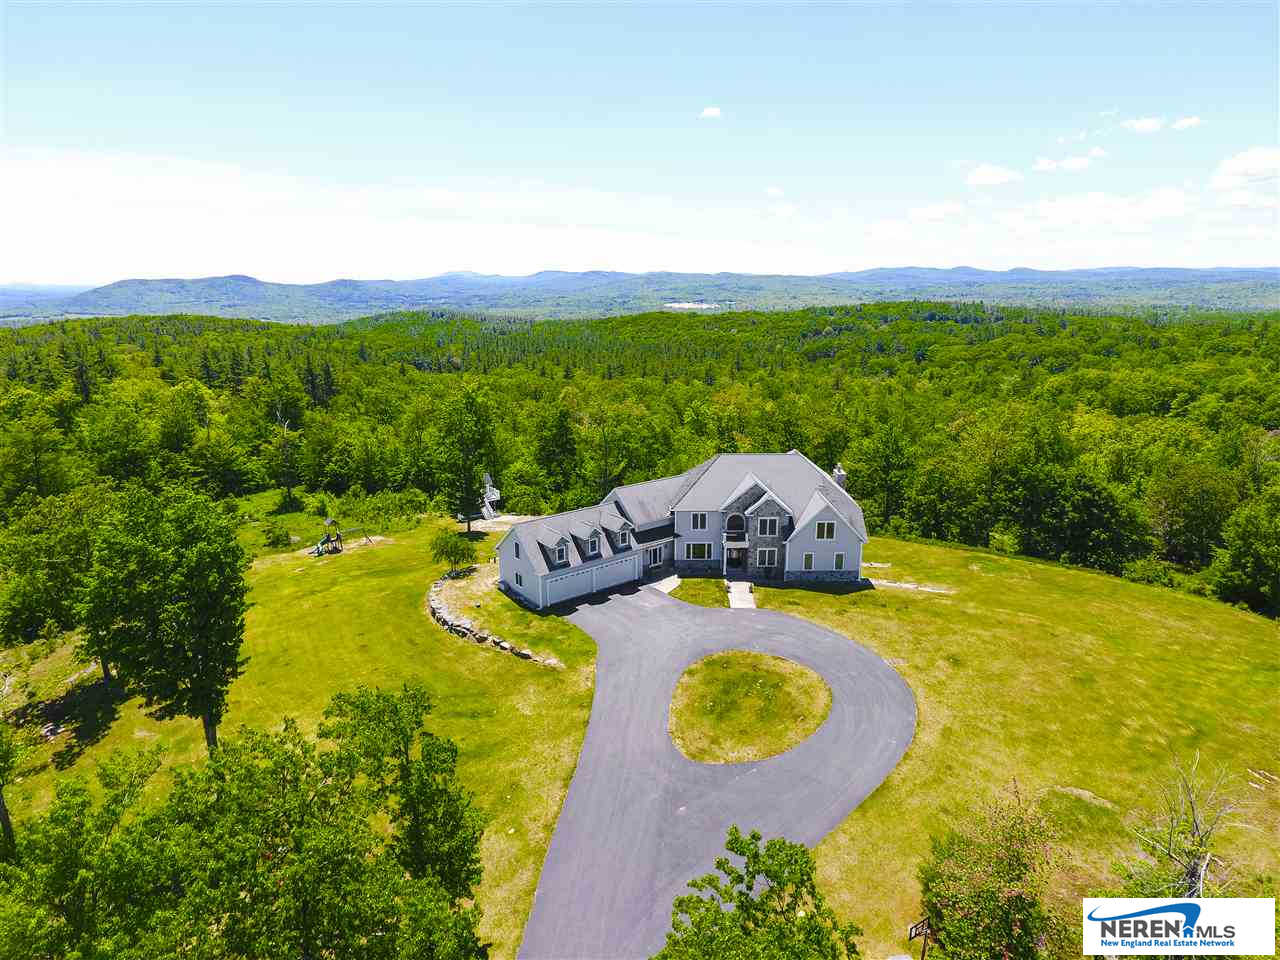 129 North Road, Hillsborough, NH 03244 now has a new price of $1,075,000!